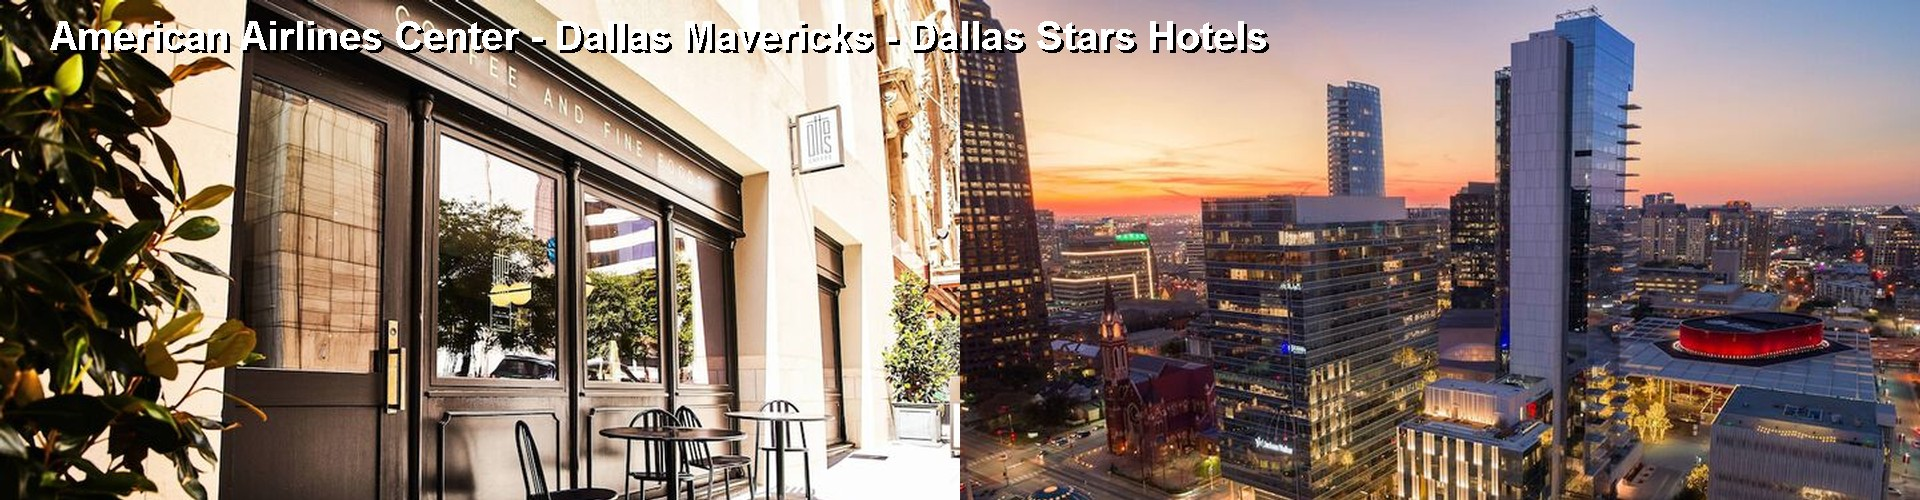 5 Best Hotels near American Airlines Center - Dallas Mavericks - Dallas Stars